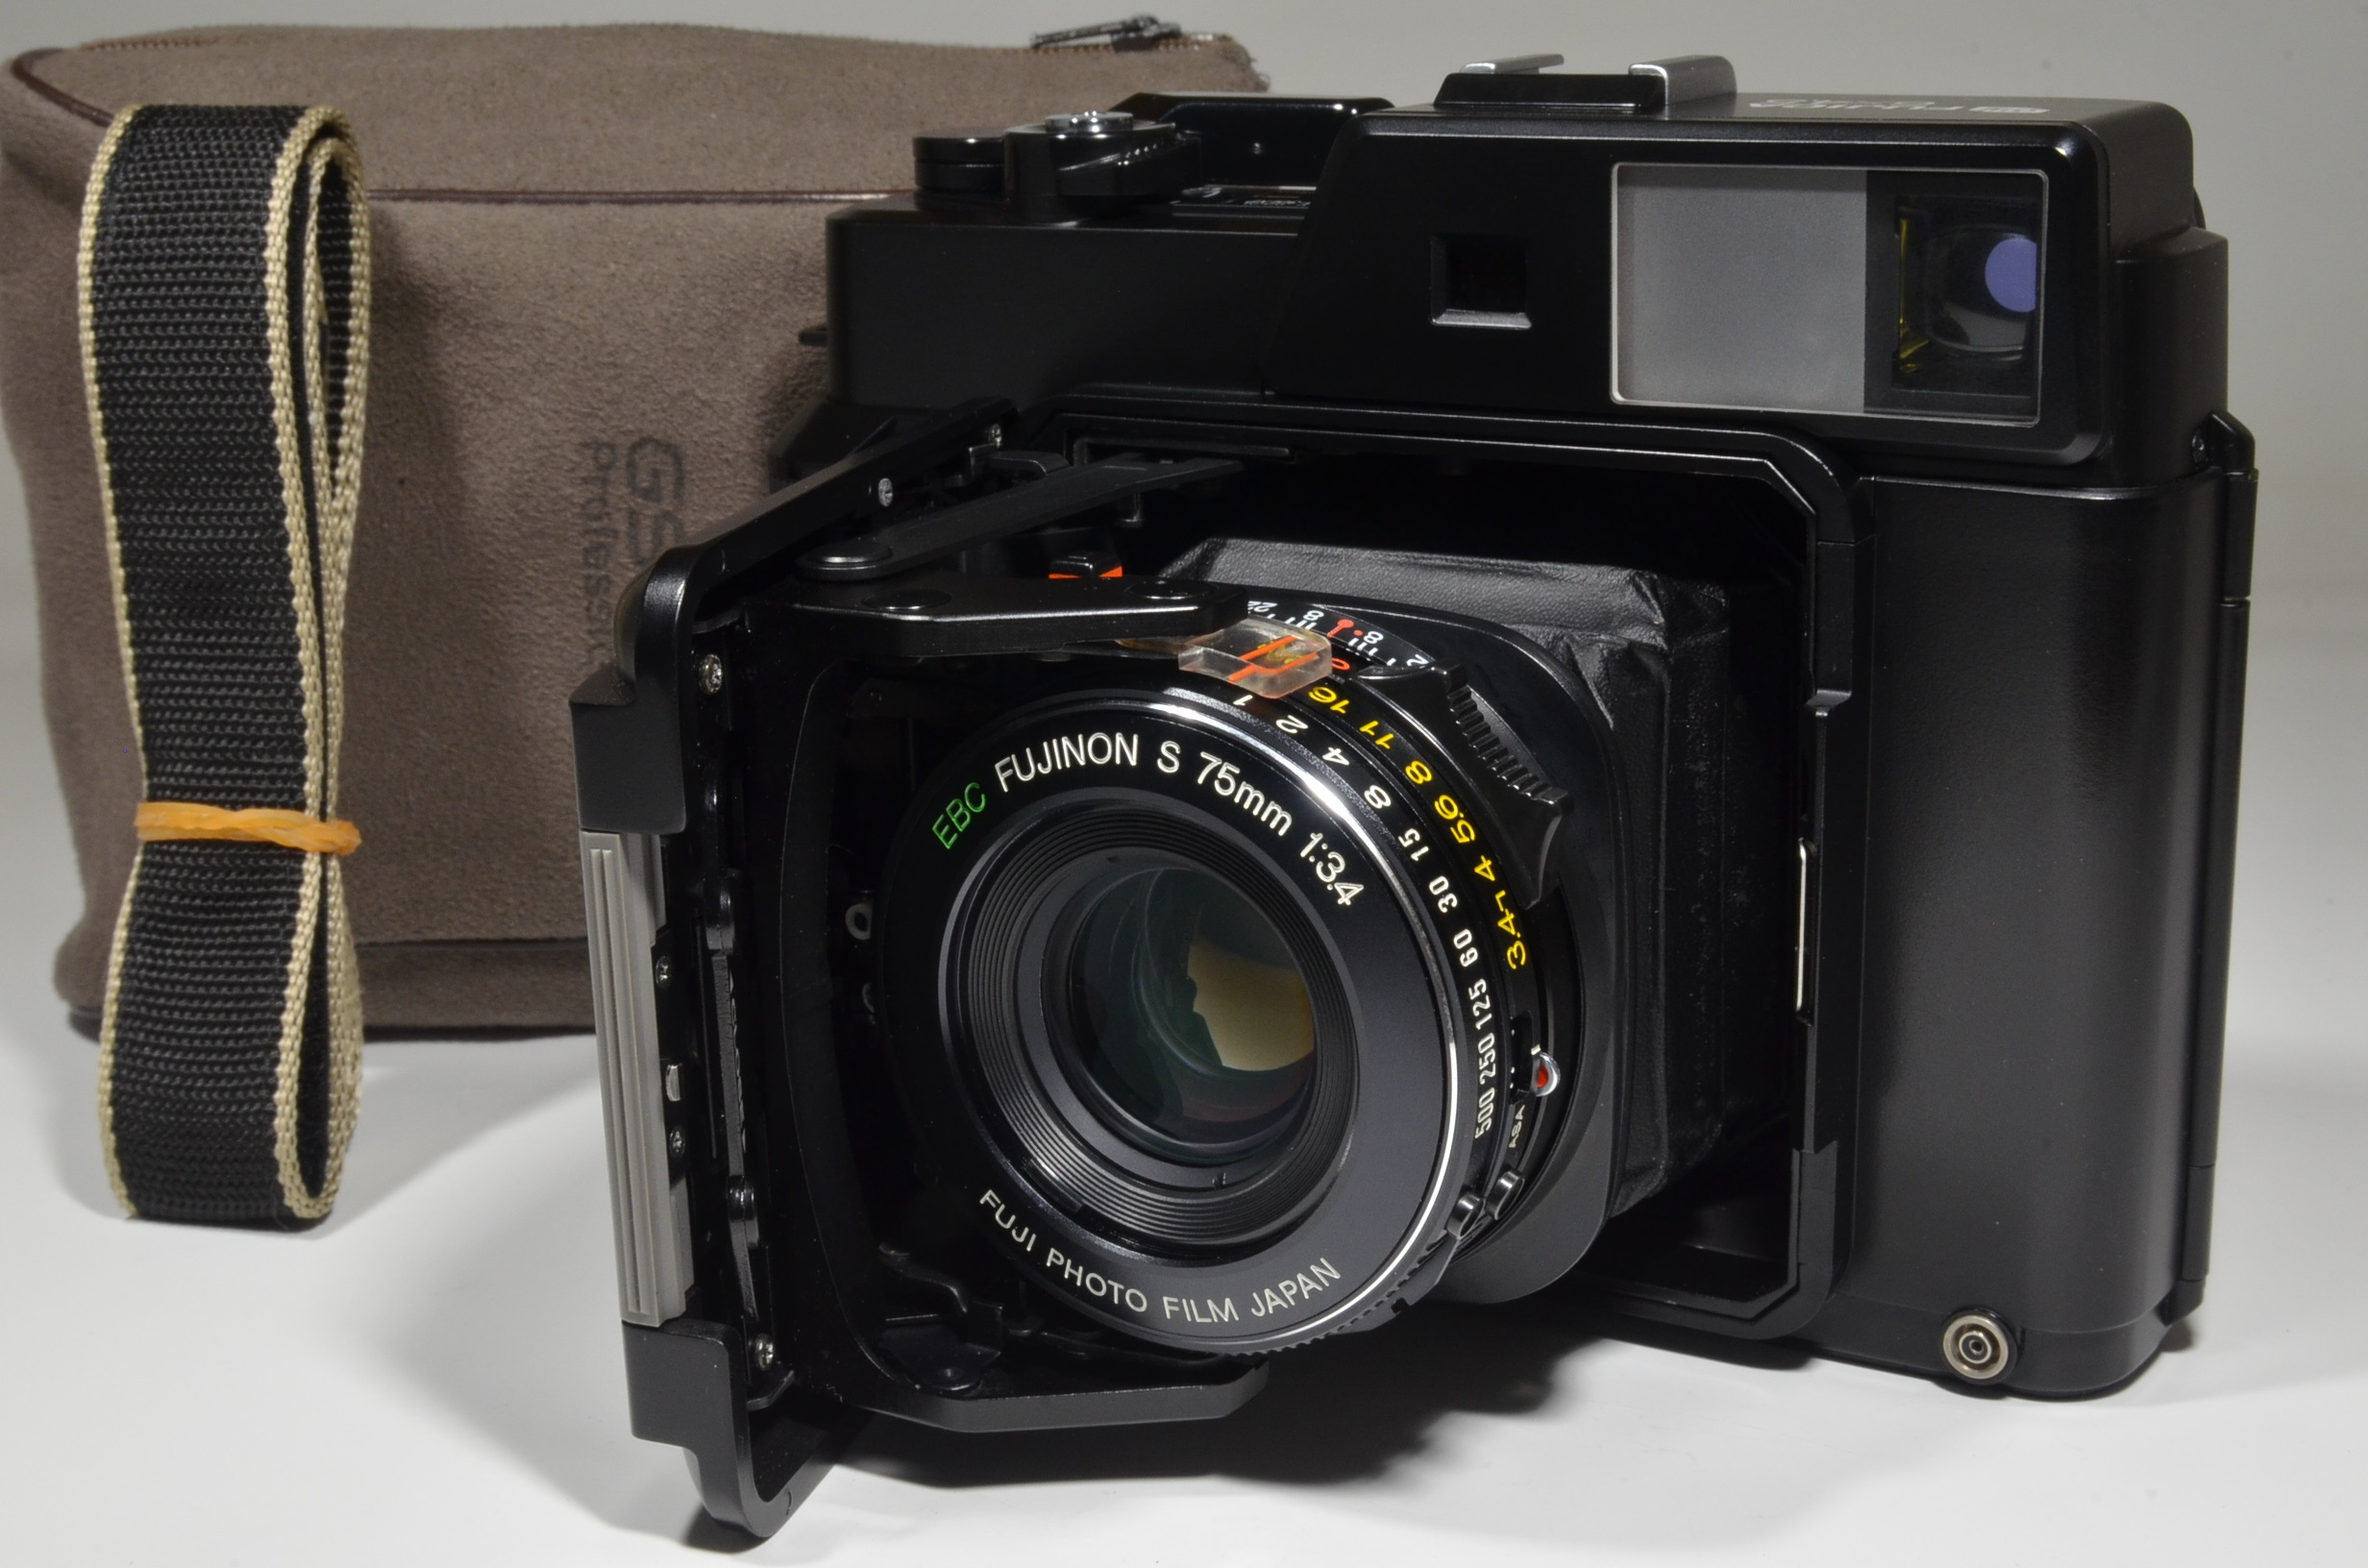 fujifilm fujica gs645 pro fujinon 75mm f3.4 medium format